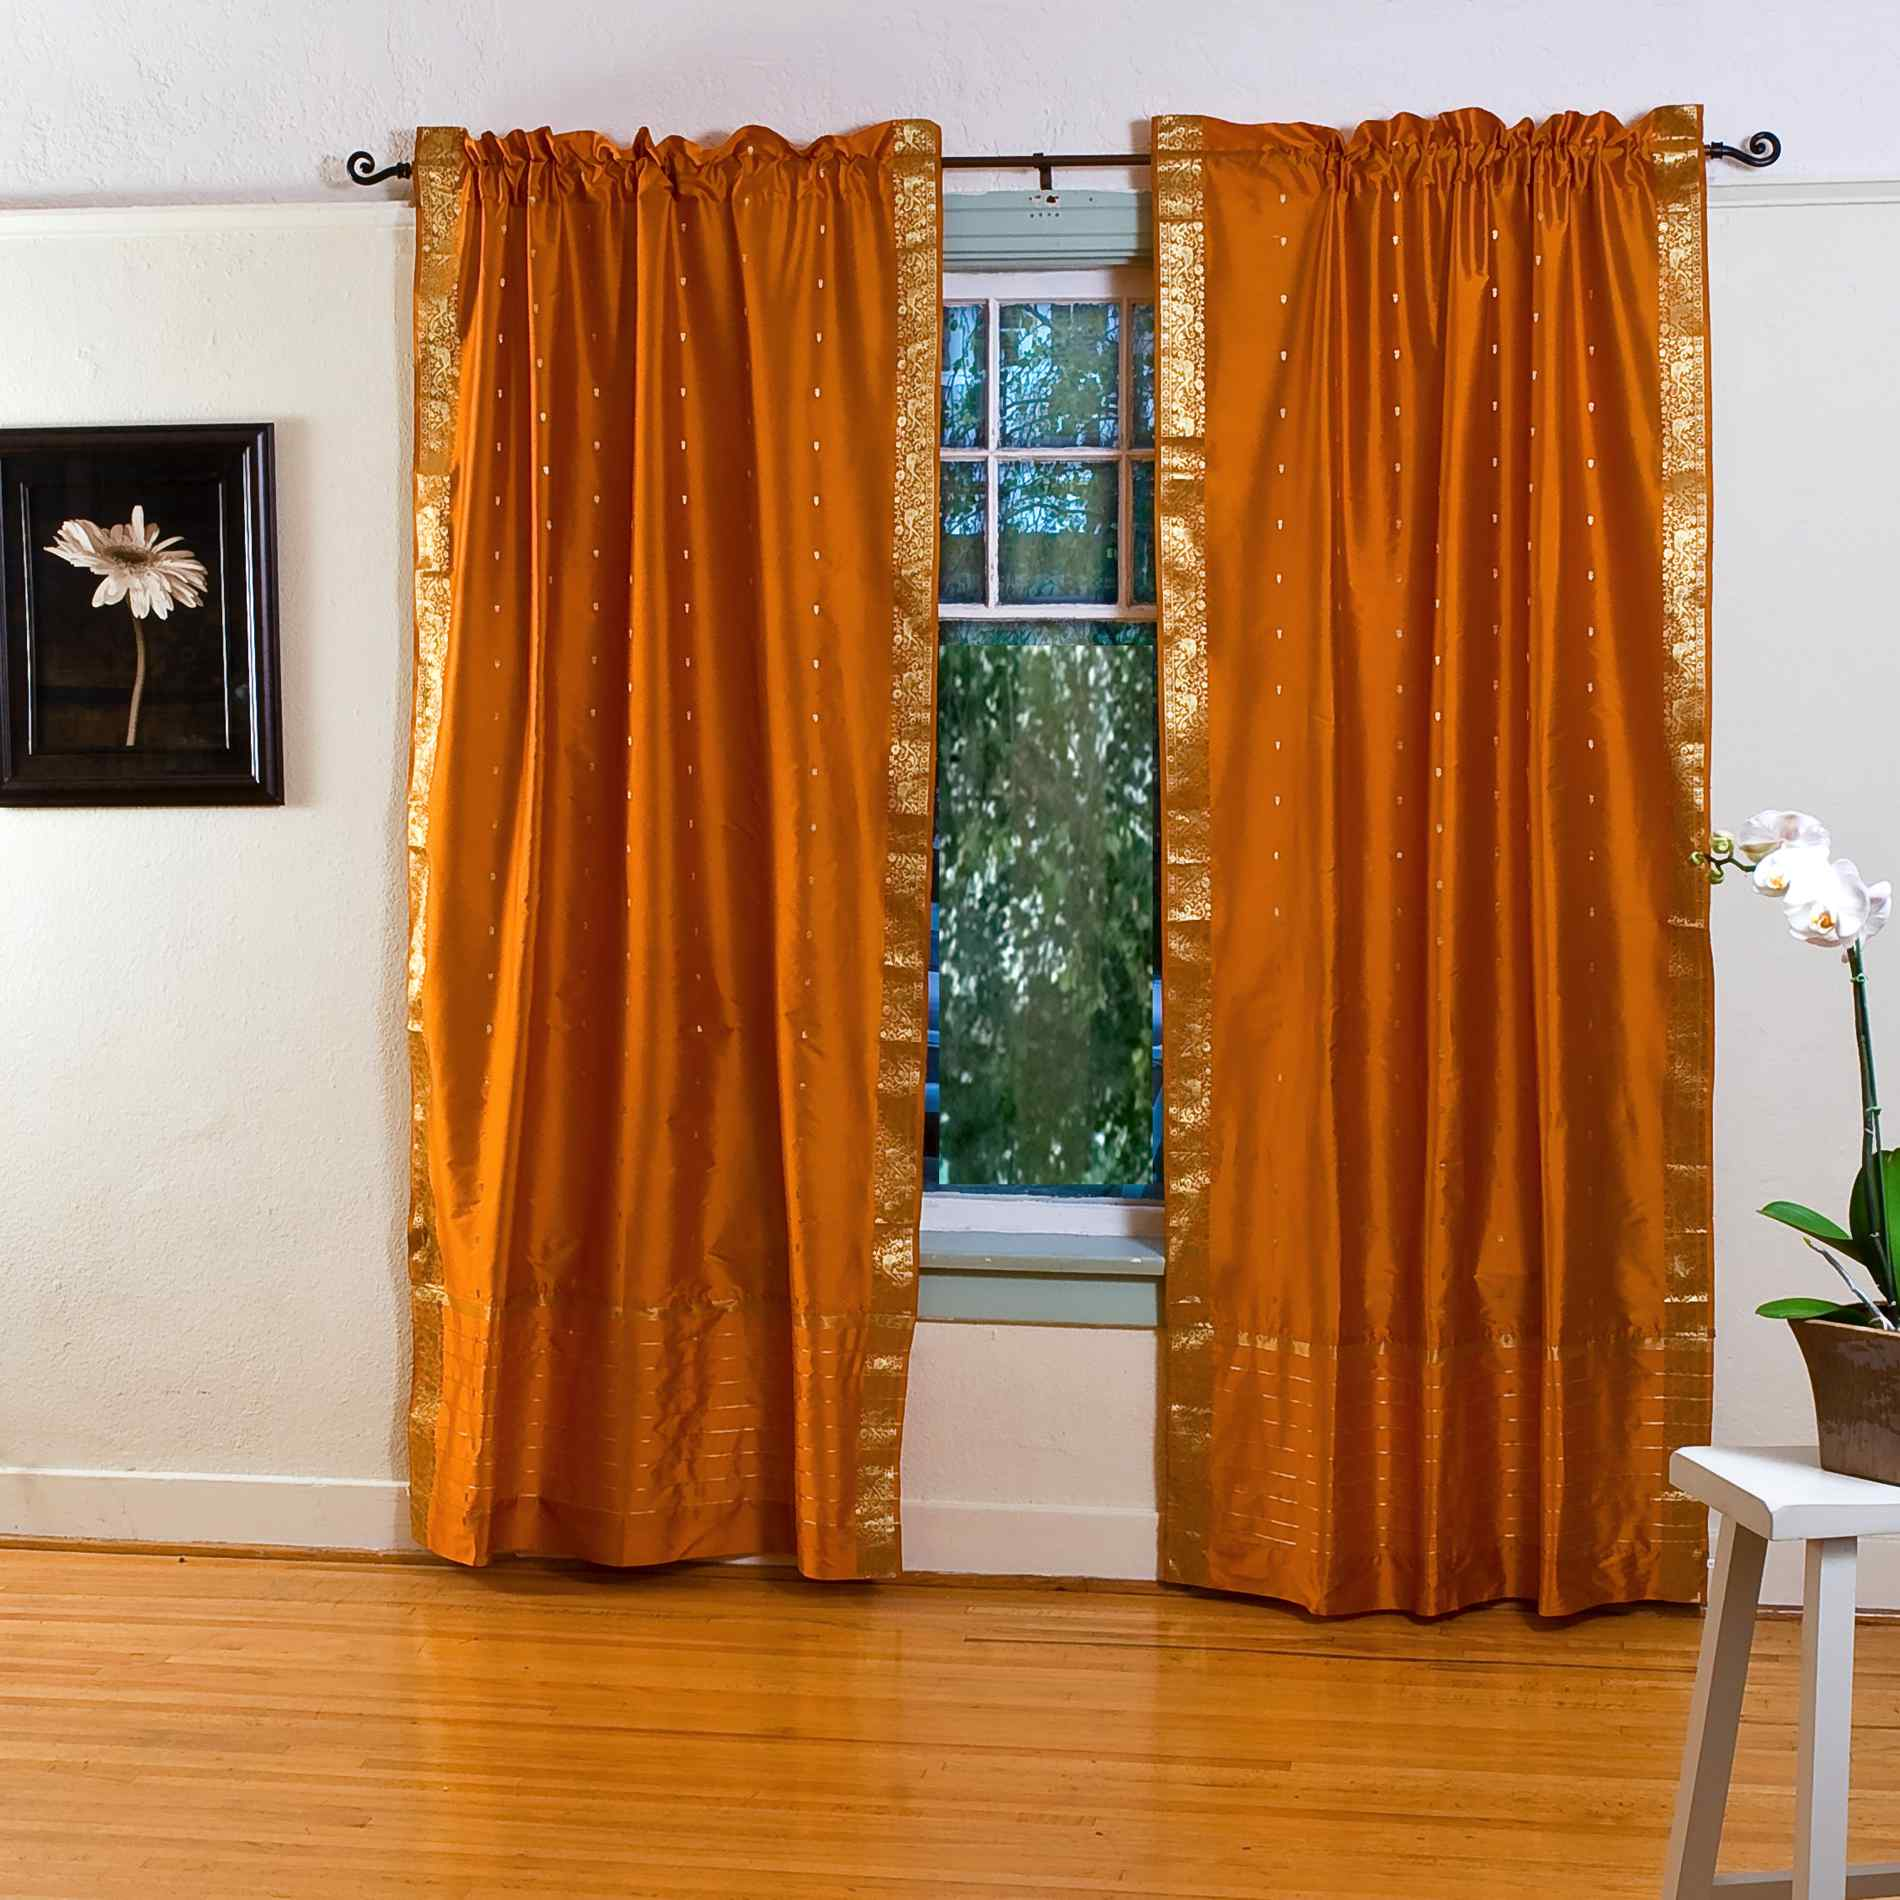 elegant size modern valances design curtains kitchen blackout walmart kohls amazon curtain living of room for sheer full